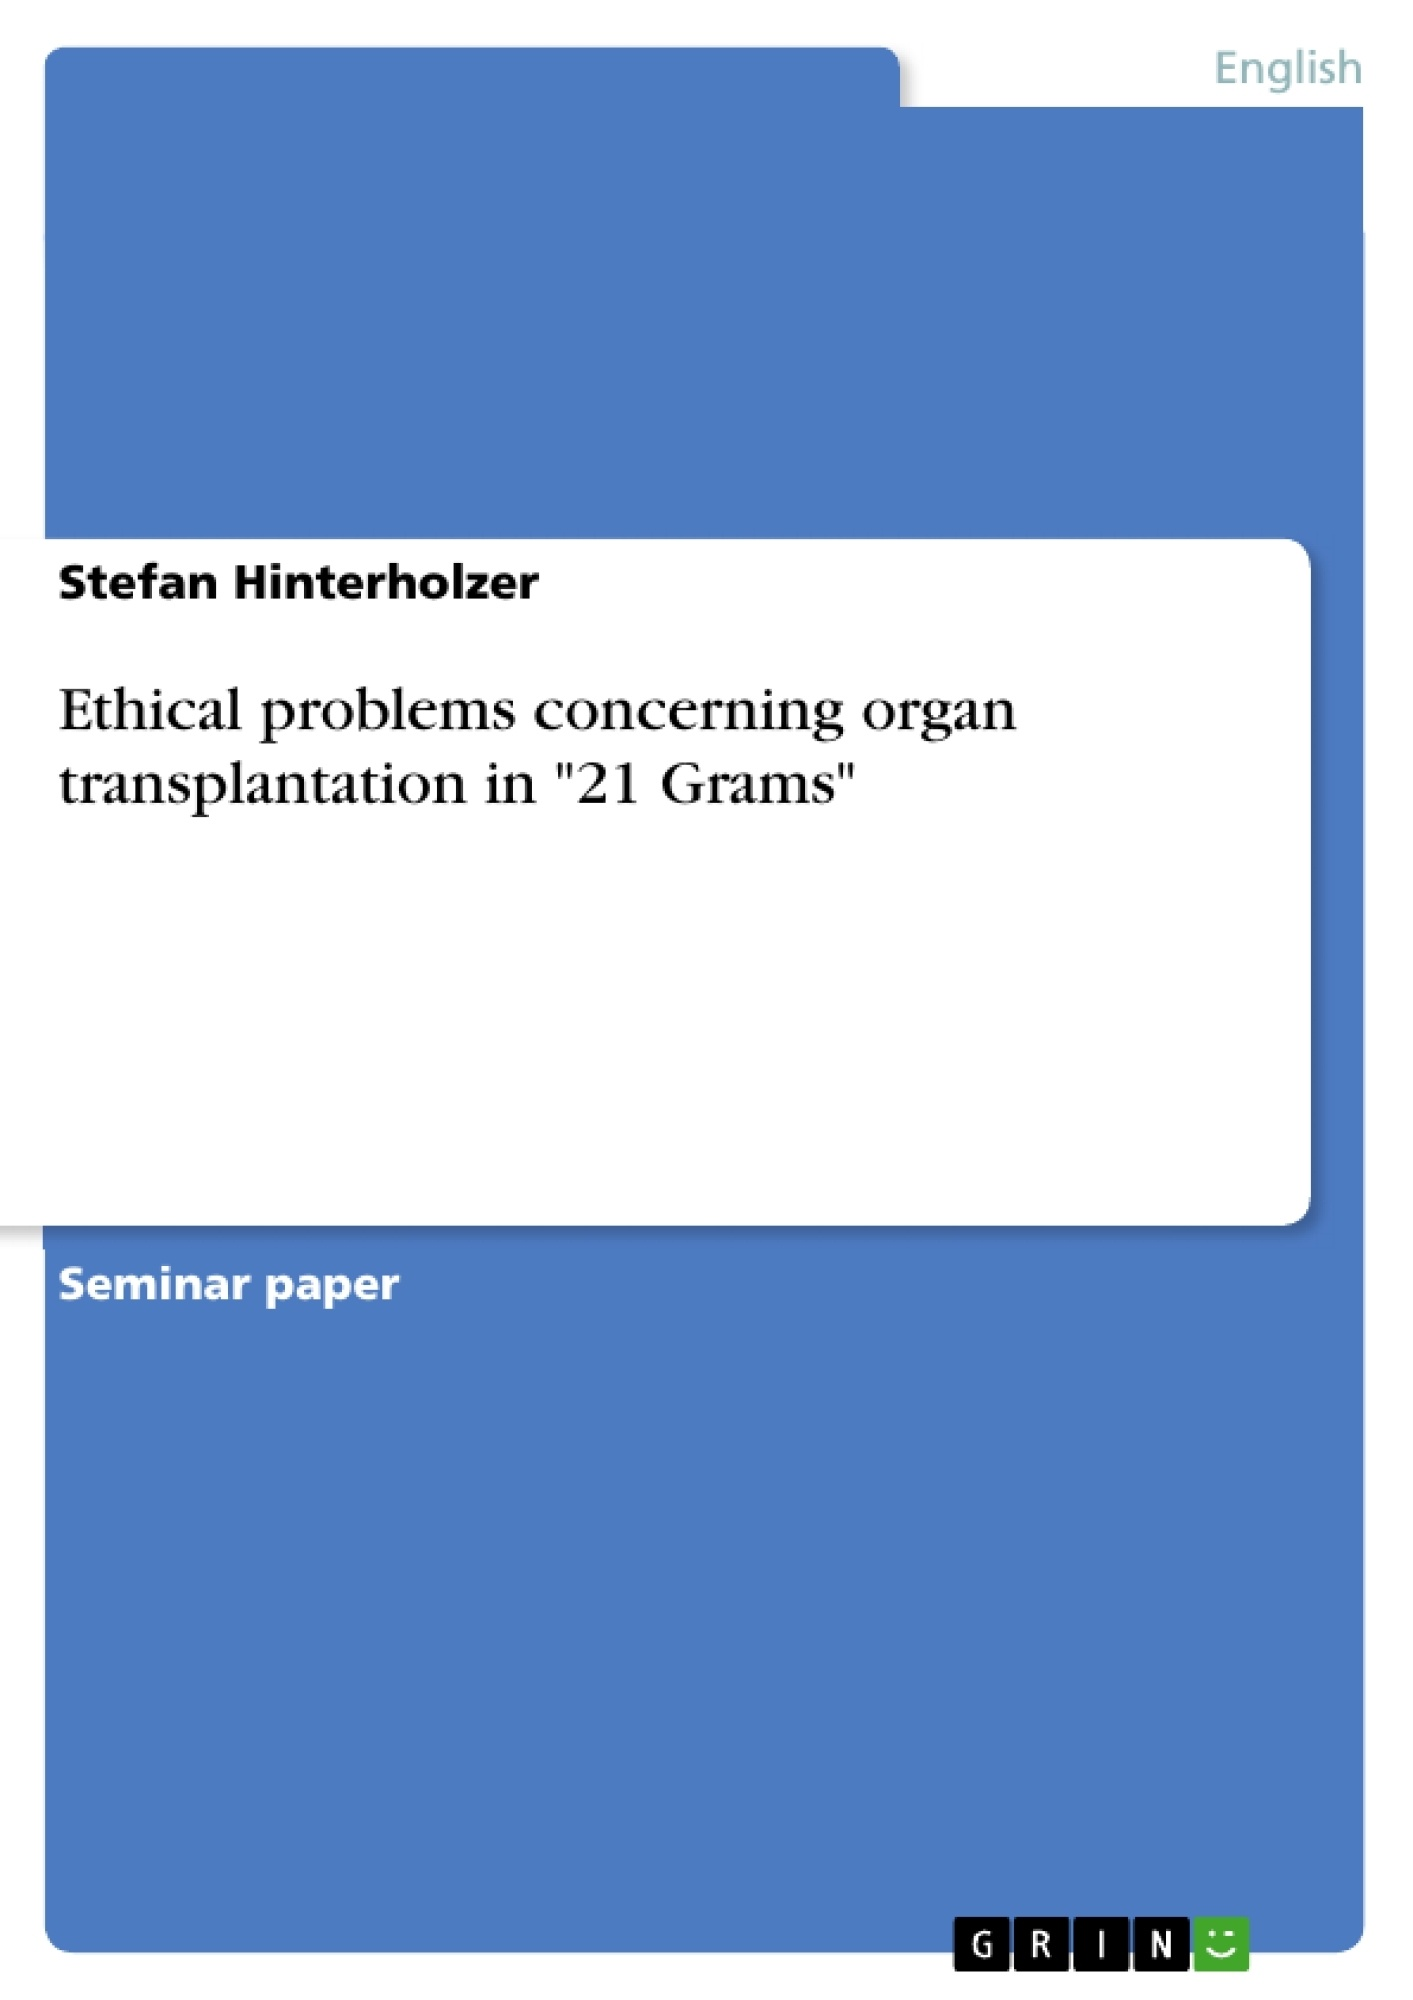 ethical problems concerning organ transplantation in grams ethical problems concerning organ transplantation in 21 grams publish your master s thesis bachelor s thesis essay or term paper